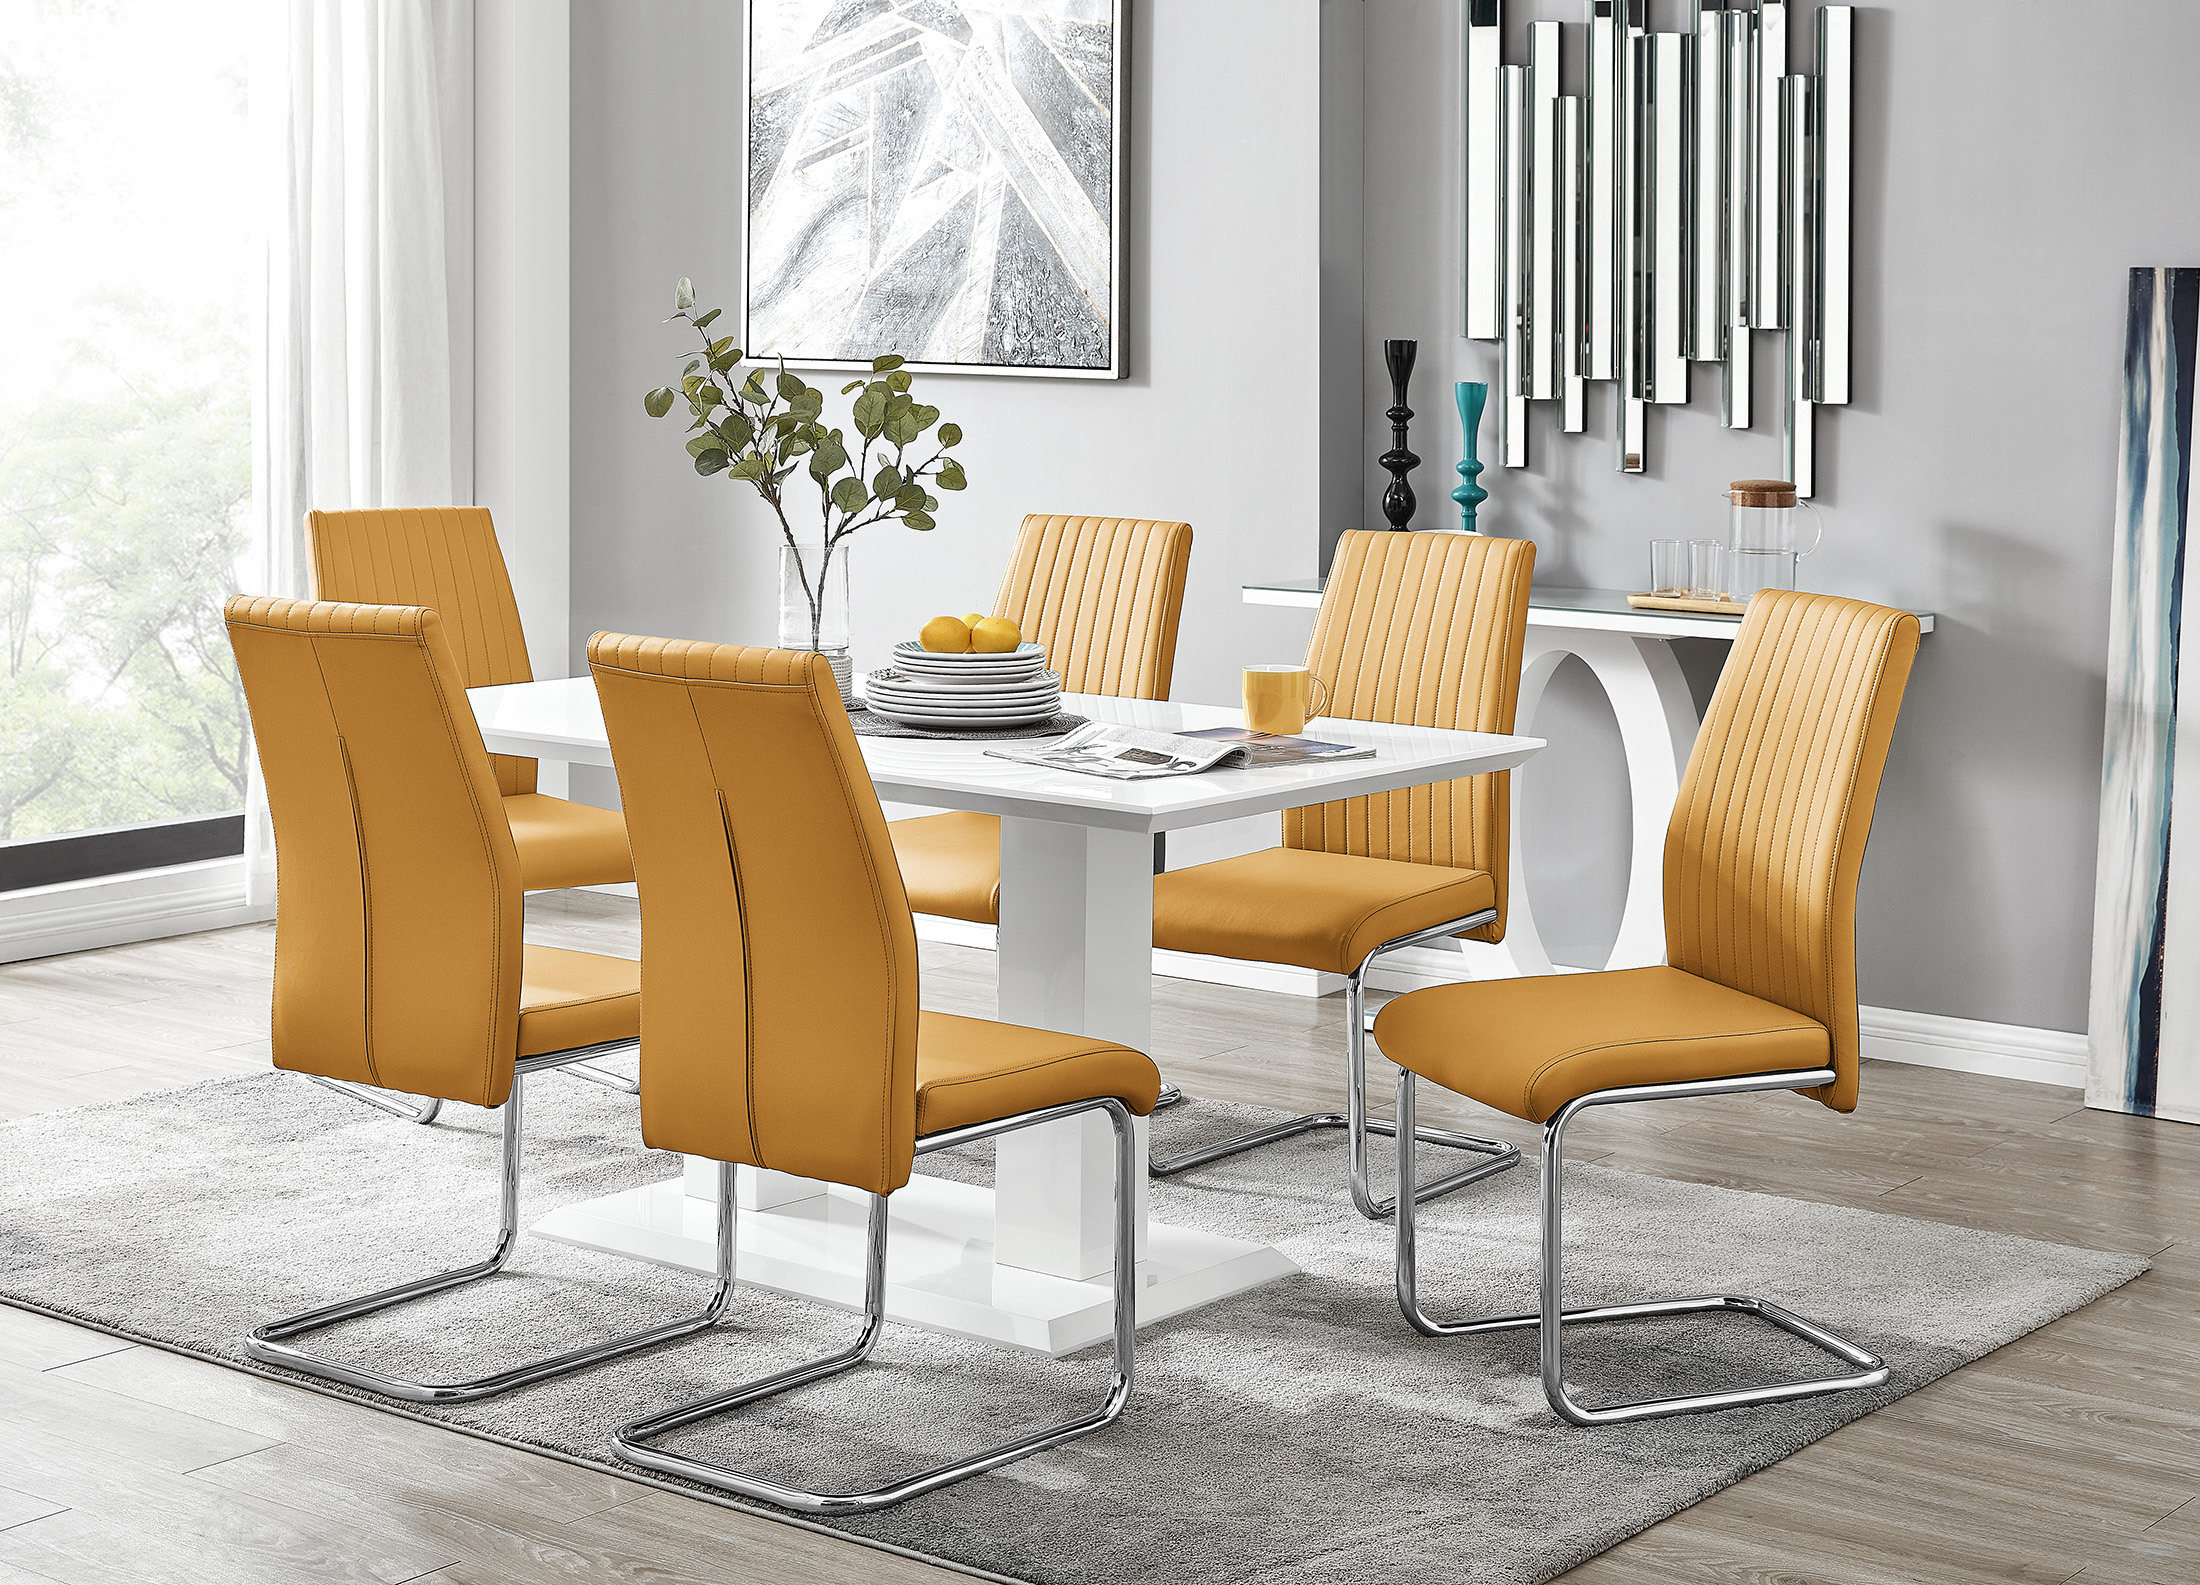 Gloss Dining Table 6 Lorenzo Chairs, Dining Room Chairs Uk